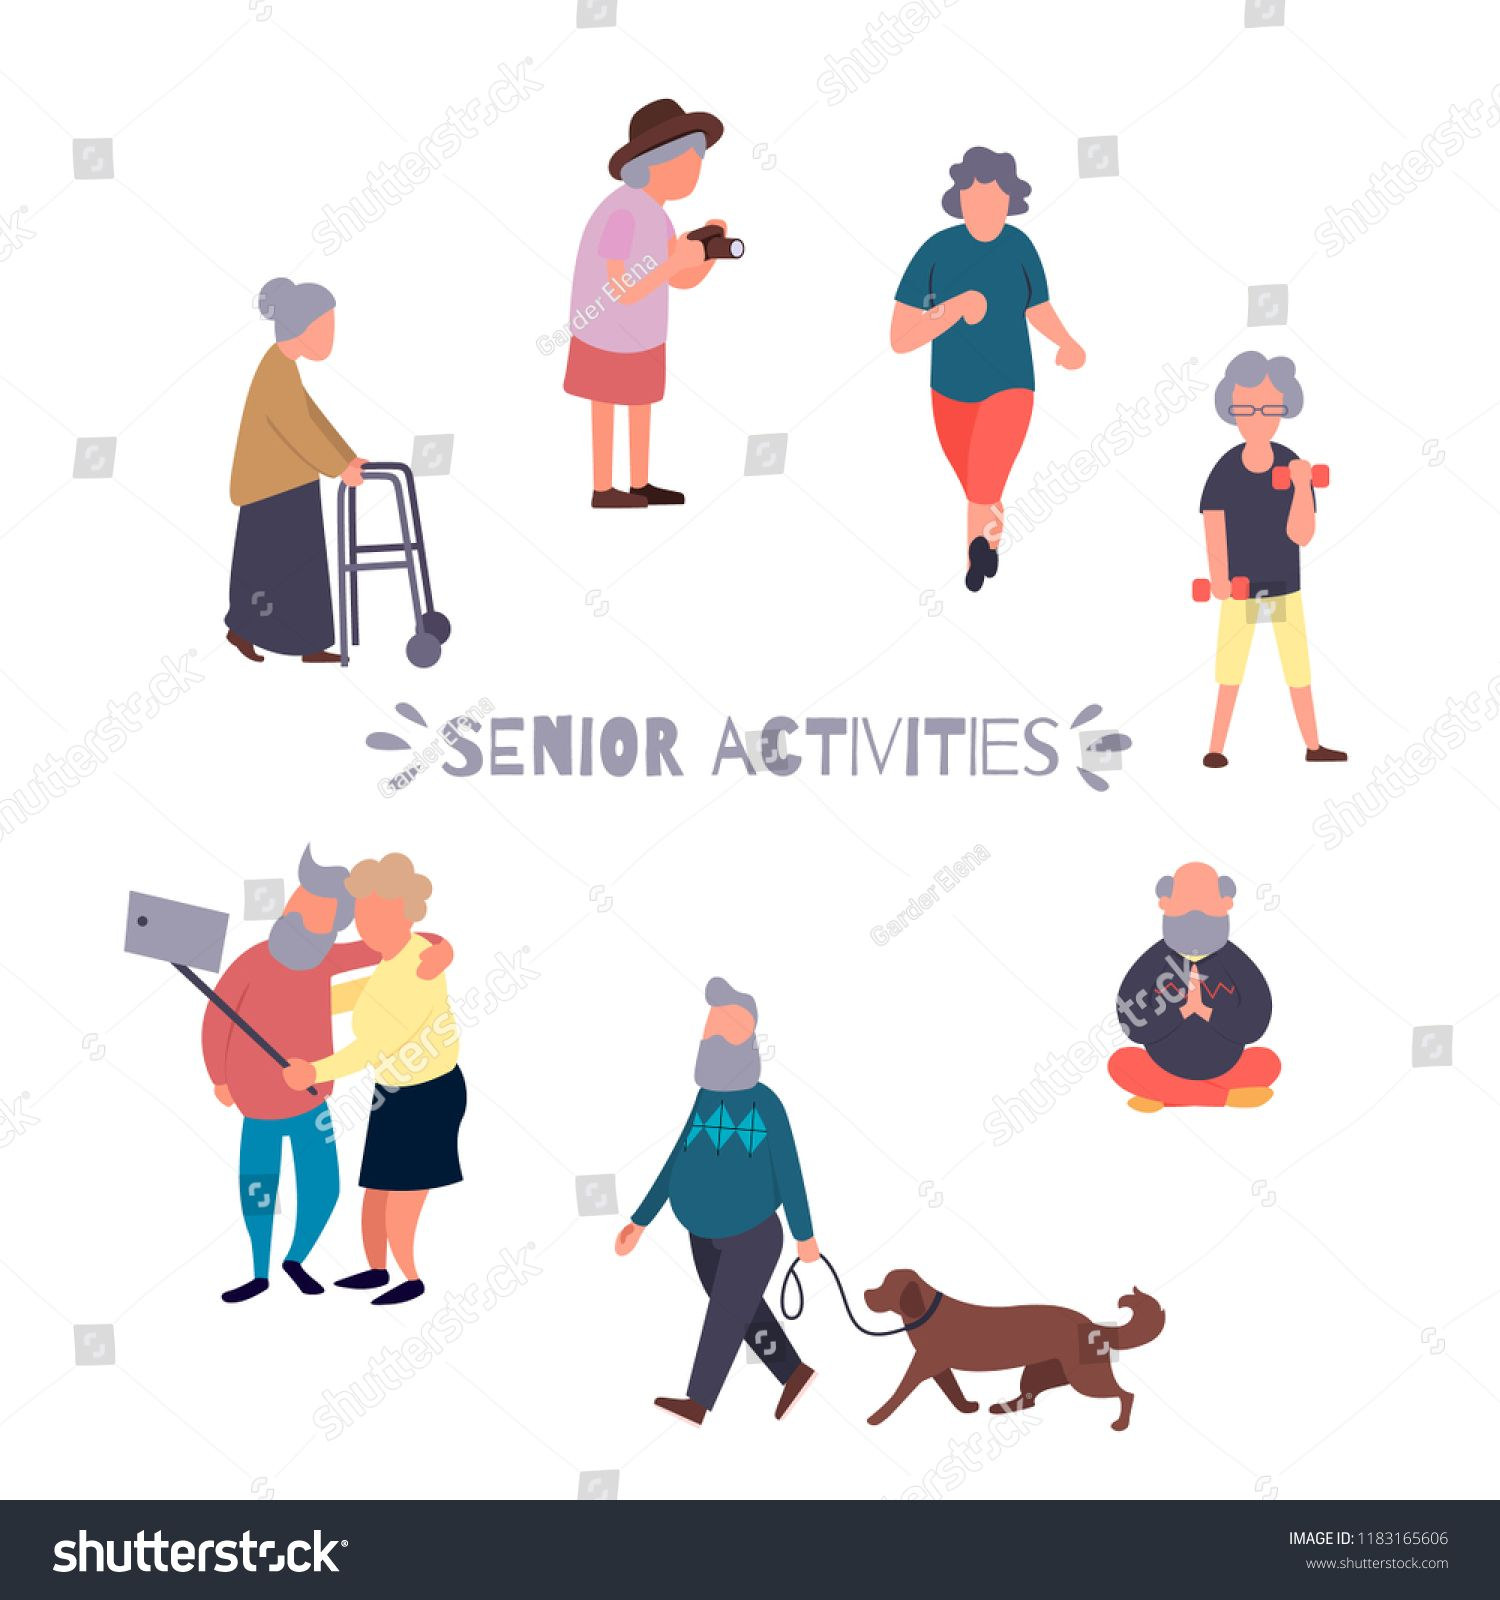 Recreation And Leisure Senior Activities Concept Group Of Active Old People Elder People Vector Backgrou Senior Activities Vector Character Vector Background